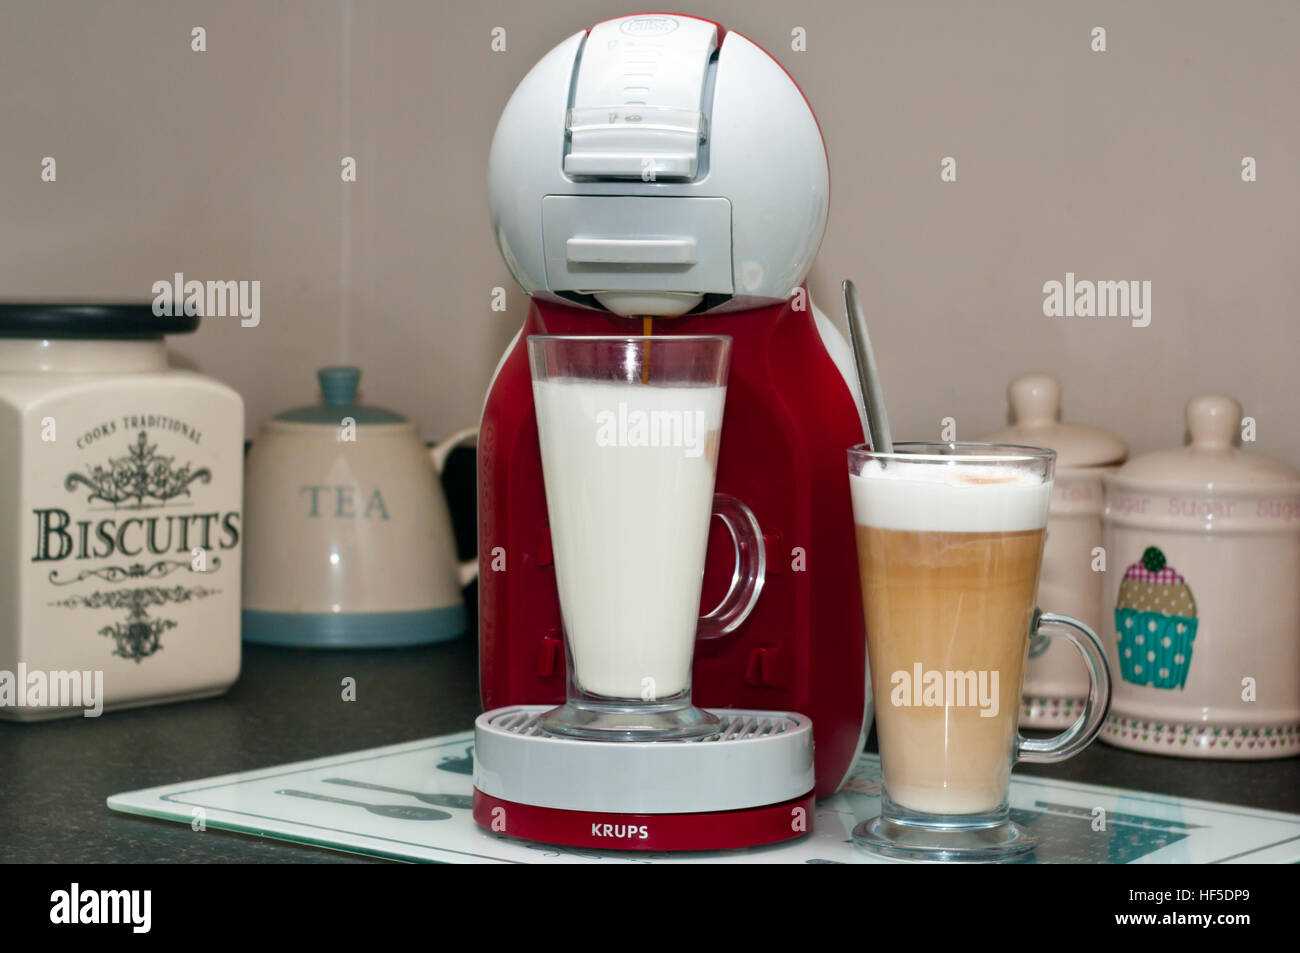 Nescafe Dolce Gusto Coffee Maker - Stock Image